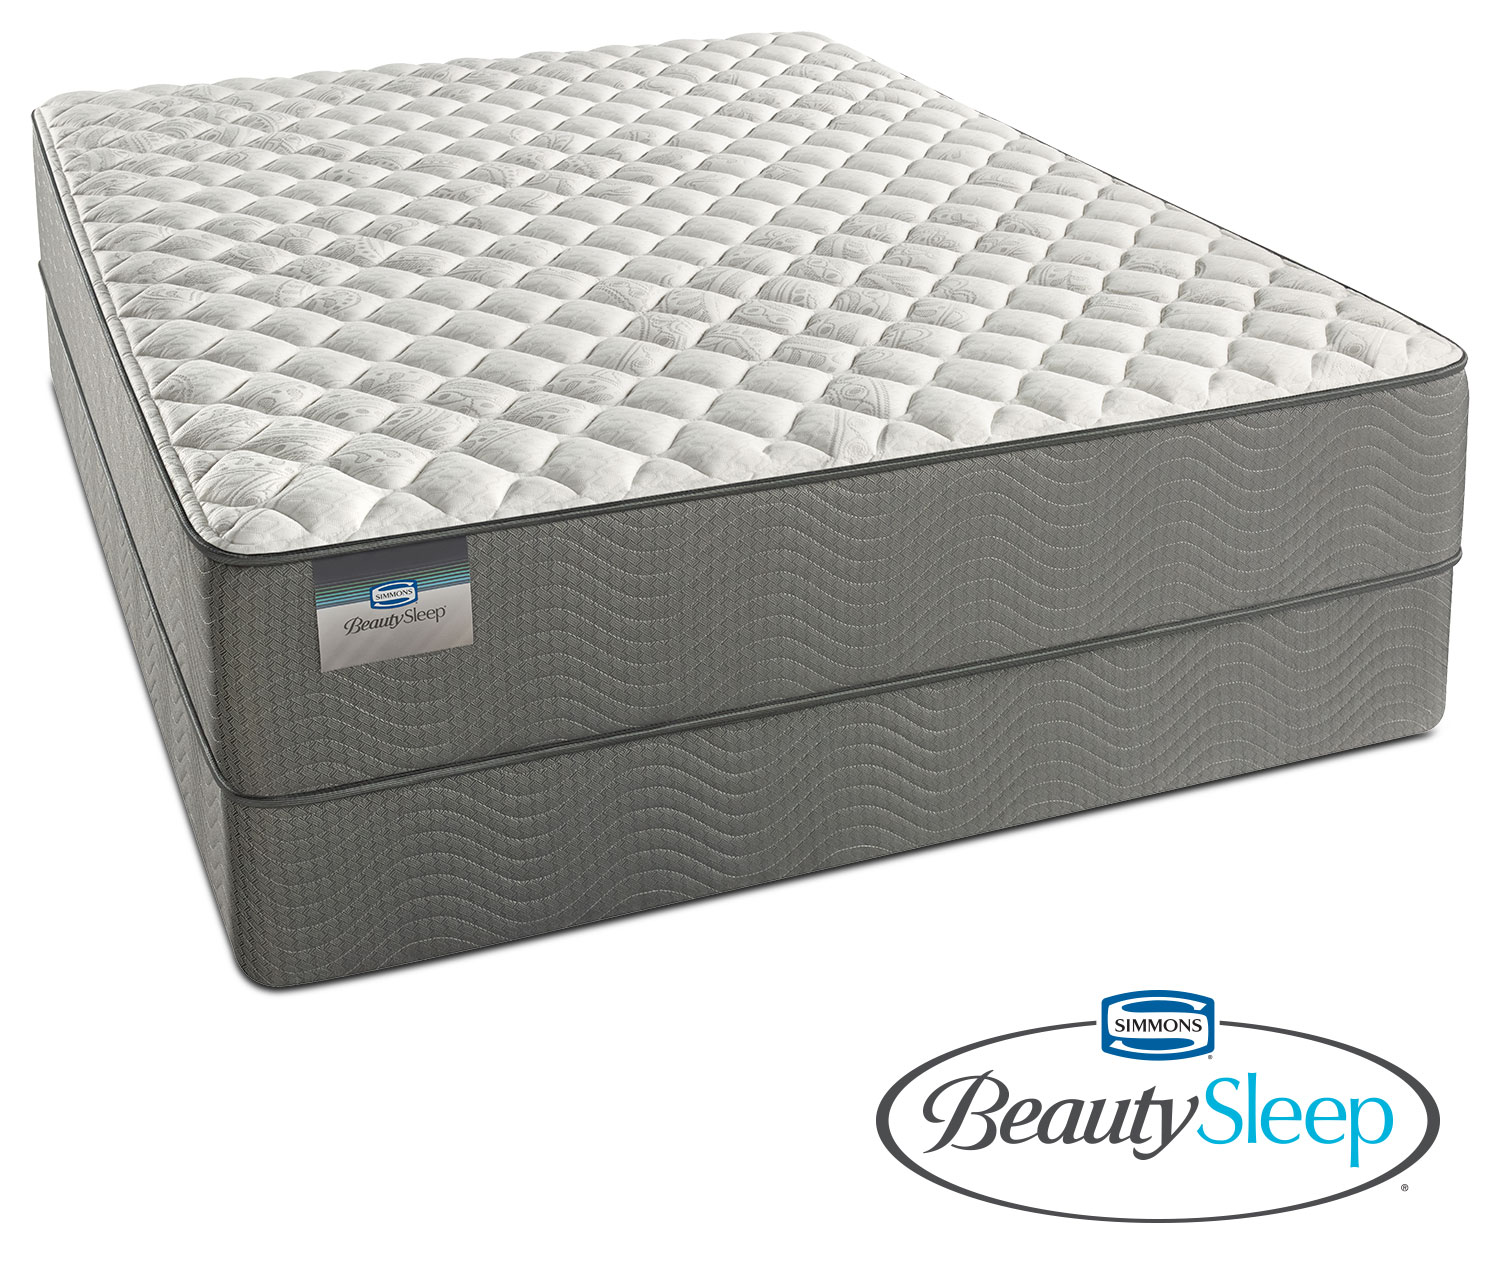 Mattresses and Bedding - Alpine White Firm Queen Mattress and Low-Profile Foundation Set